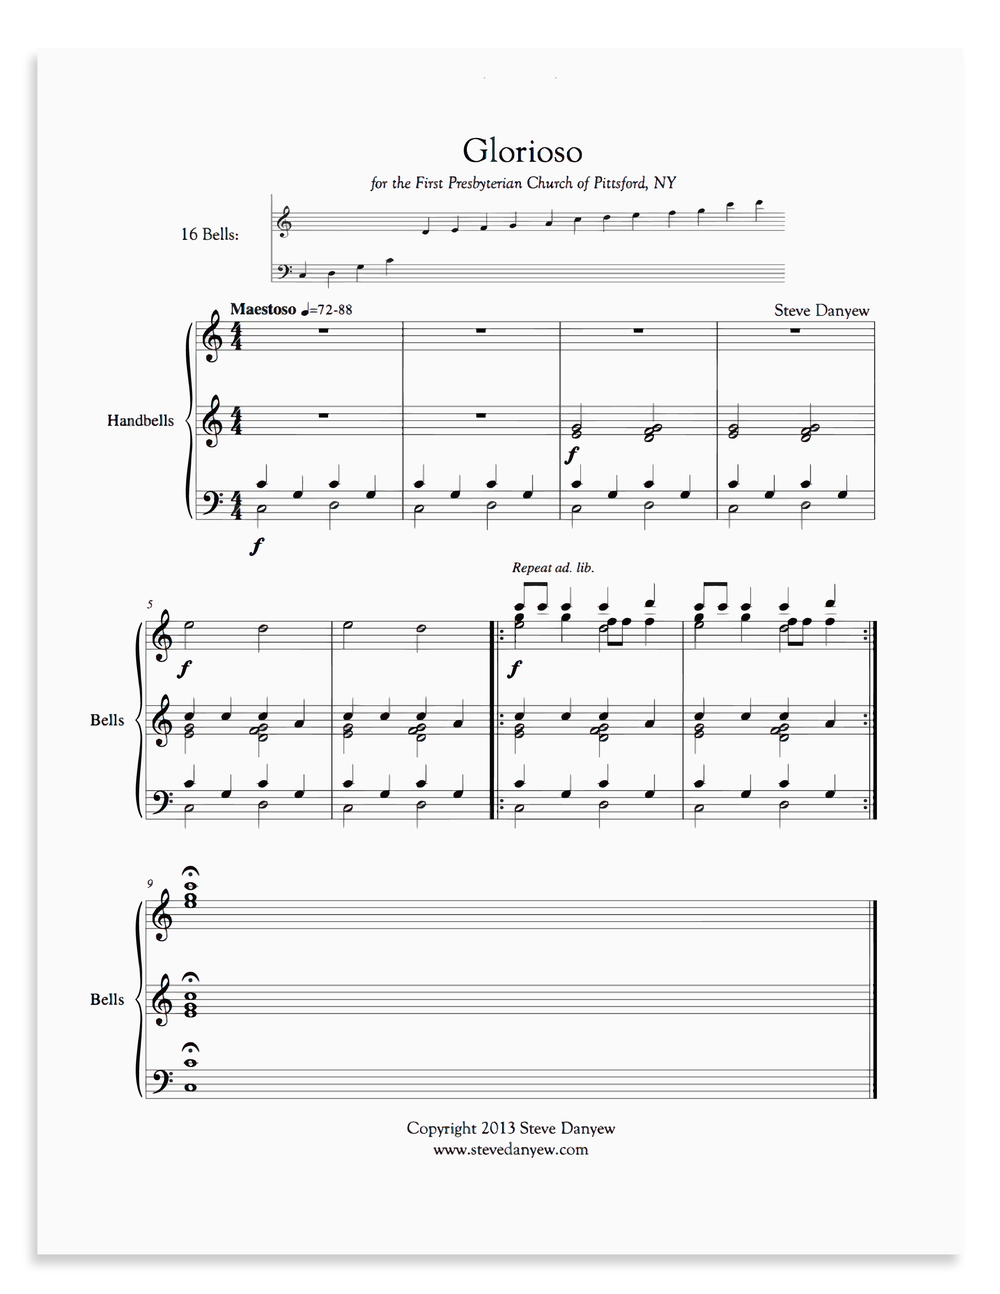 Glorioso - Free Acclamation for Handbells.png